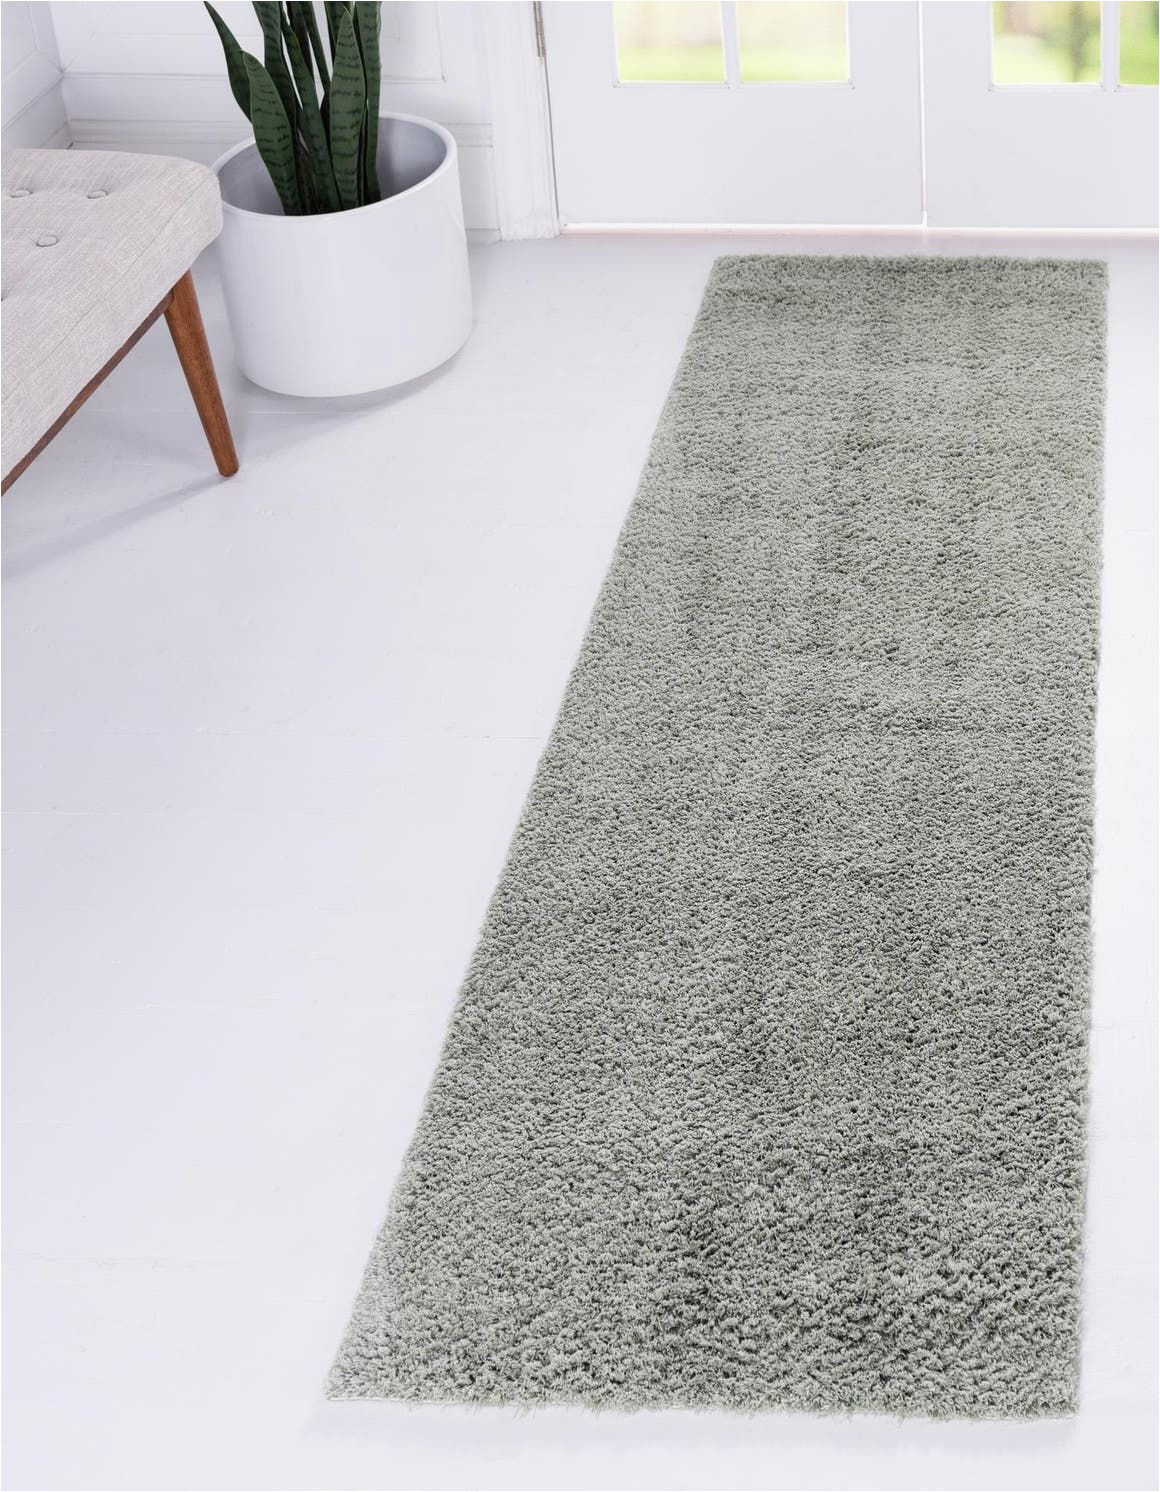 Solid Sage Green area Rug solid Shag Sage Green 10 Ft Runner area Rug In 2020